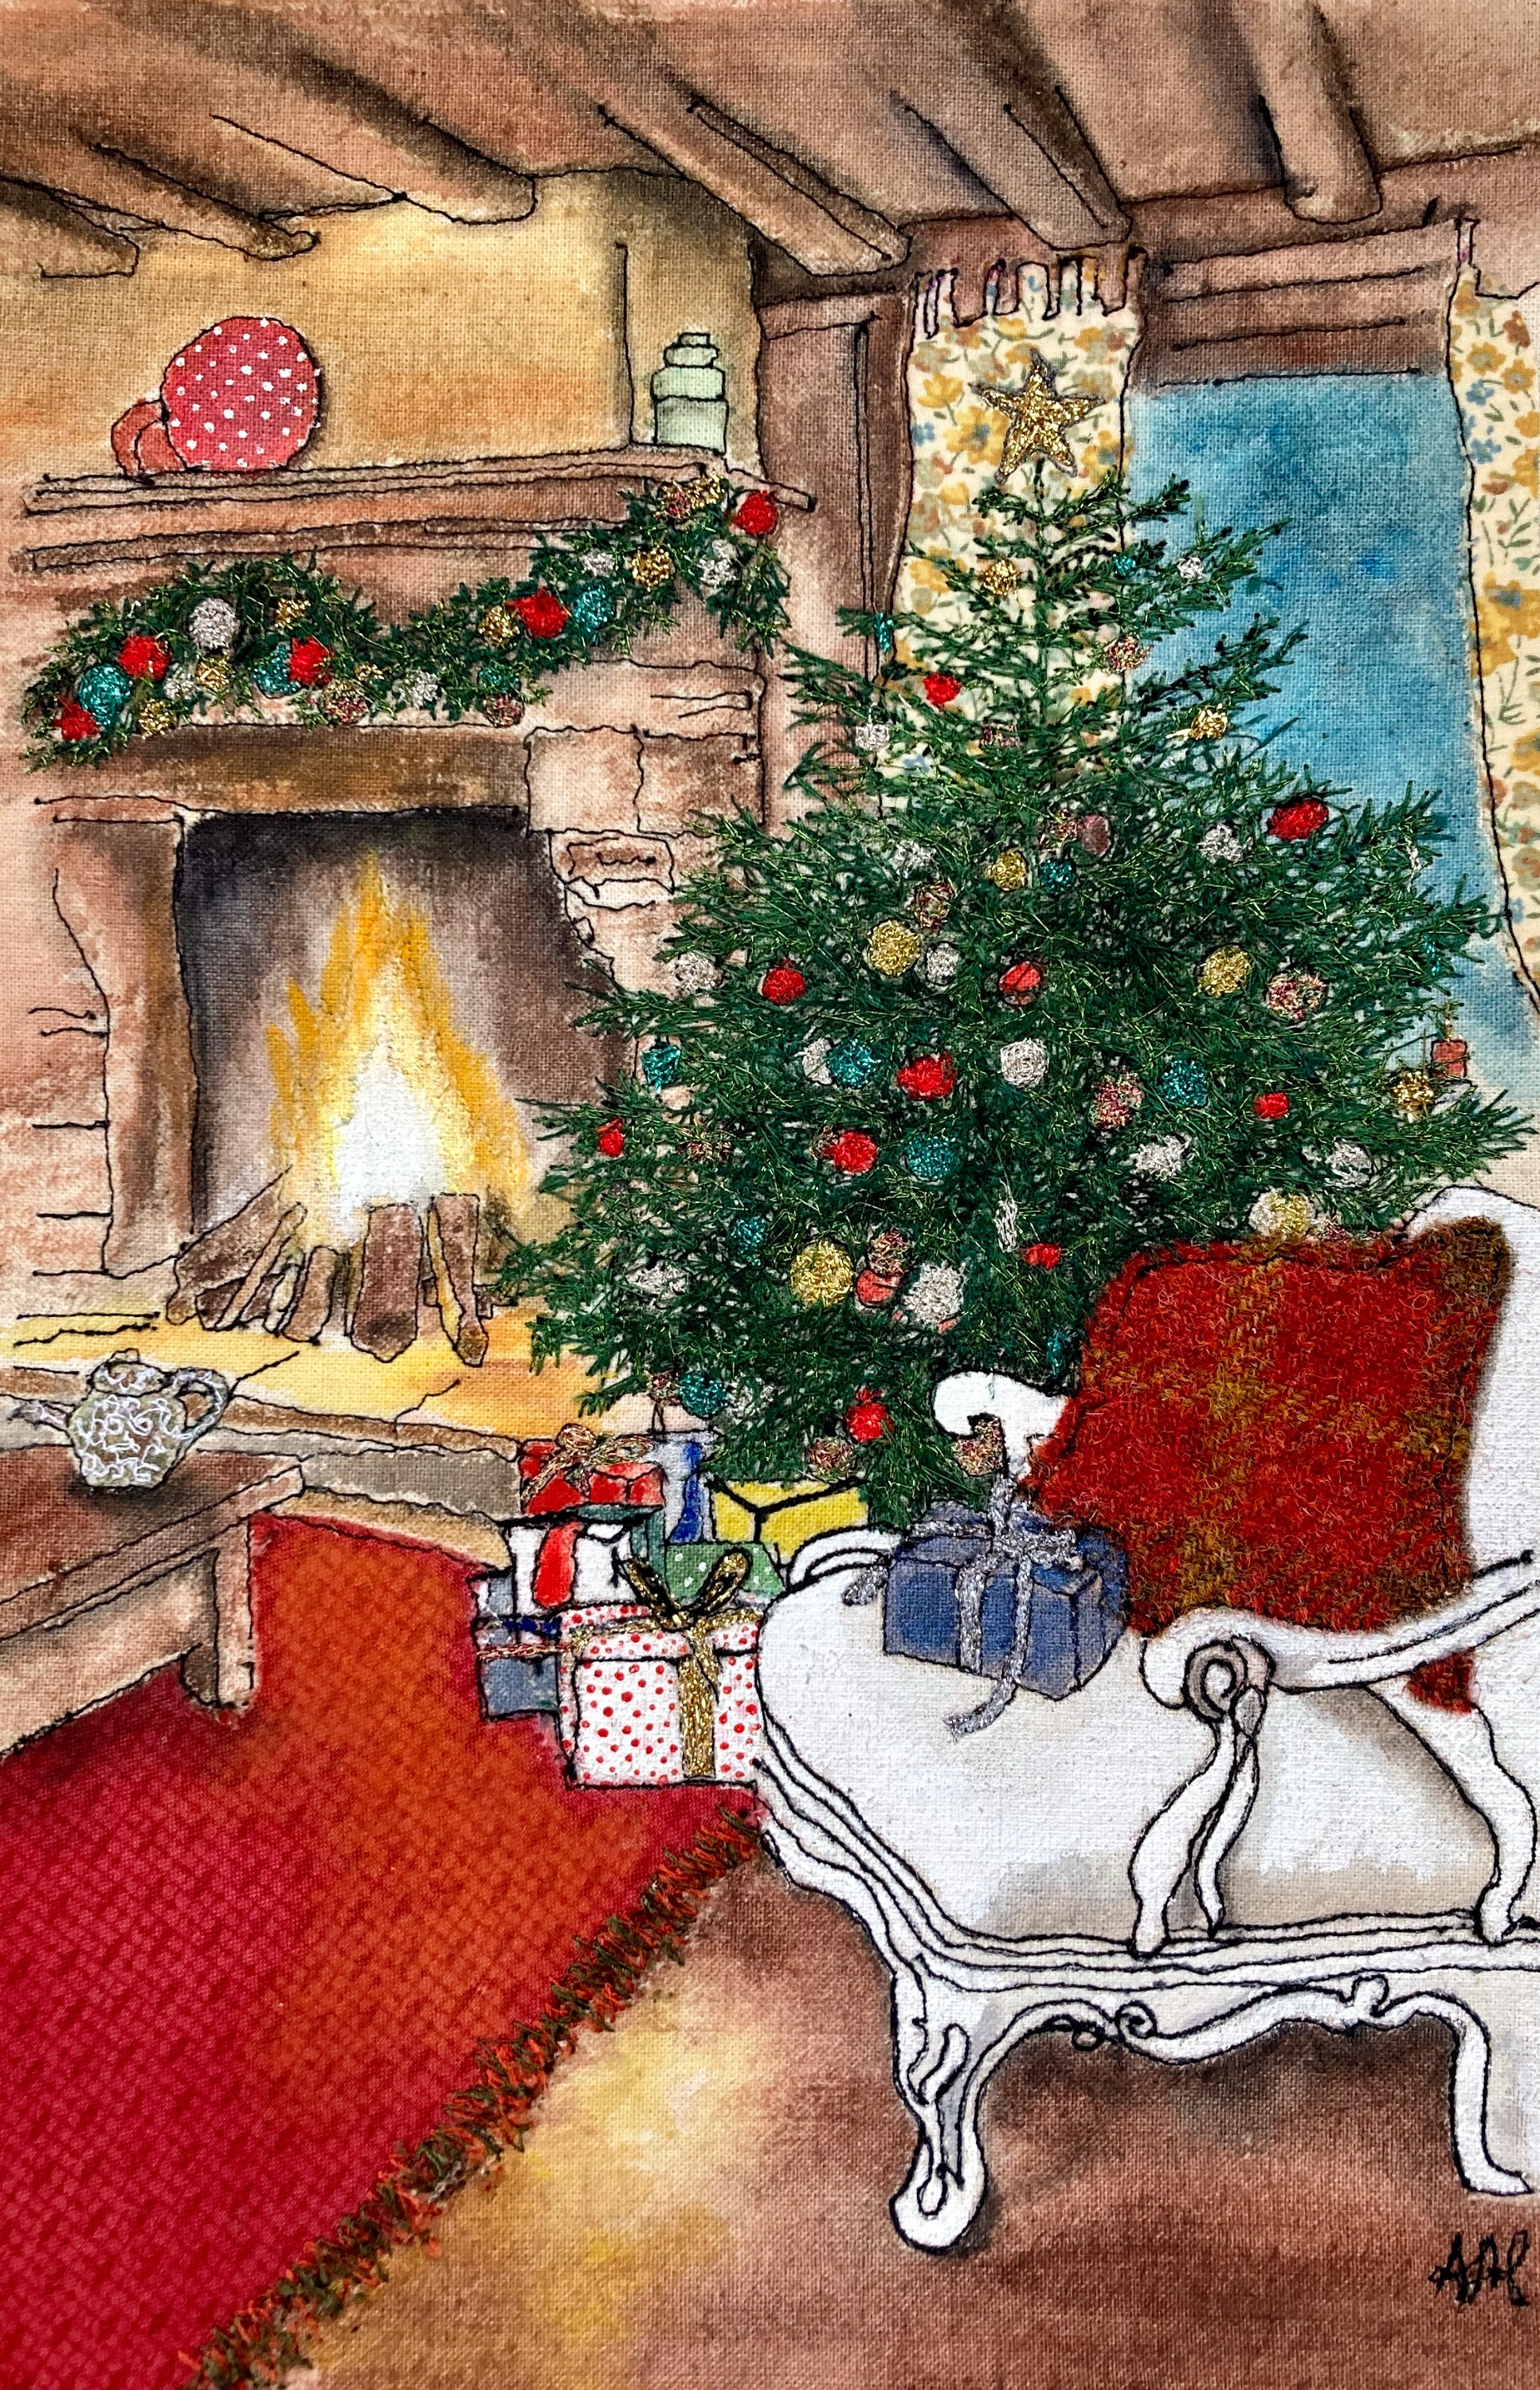 'Christmas by the Fire'